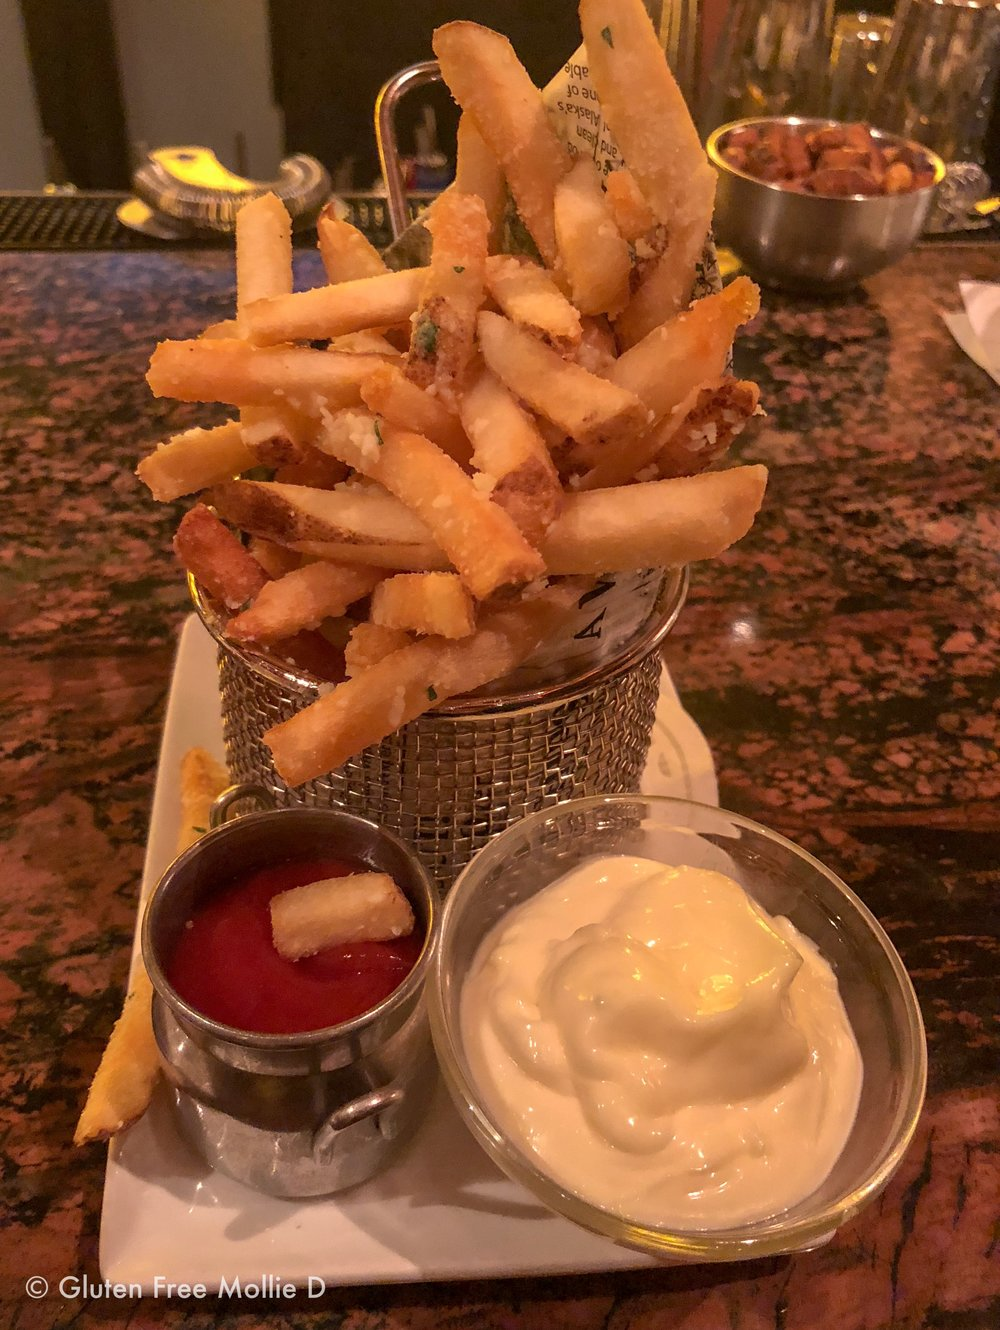 My dessert fries.